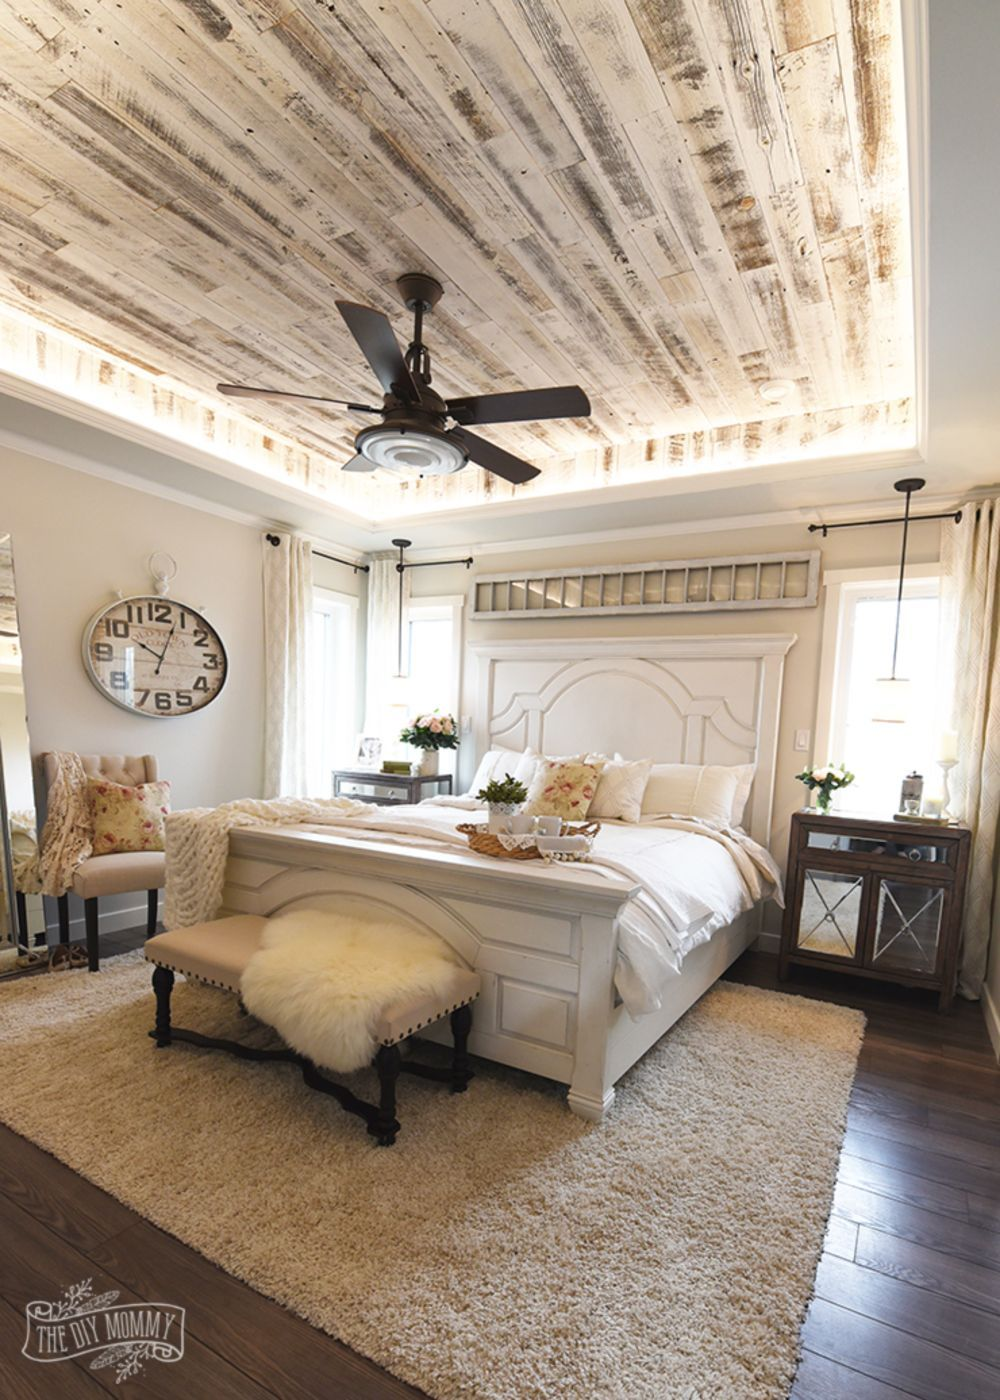 Wonderful Amazing Ideas To Convert Room Into Farmhouse Bedroom Style   TerminARTors